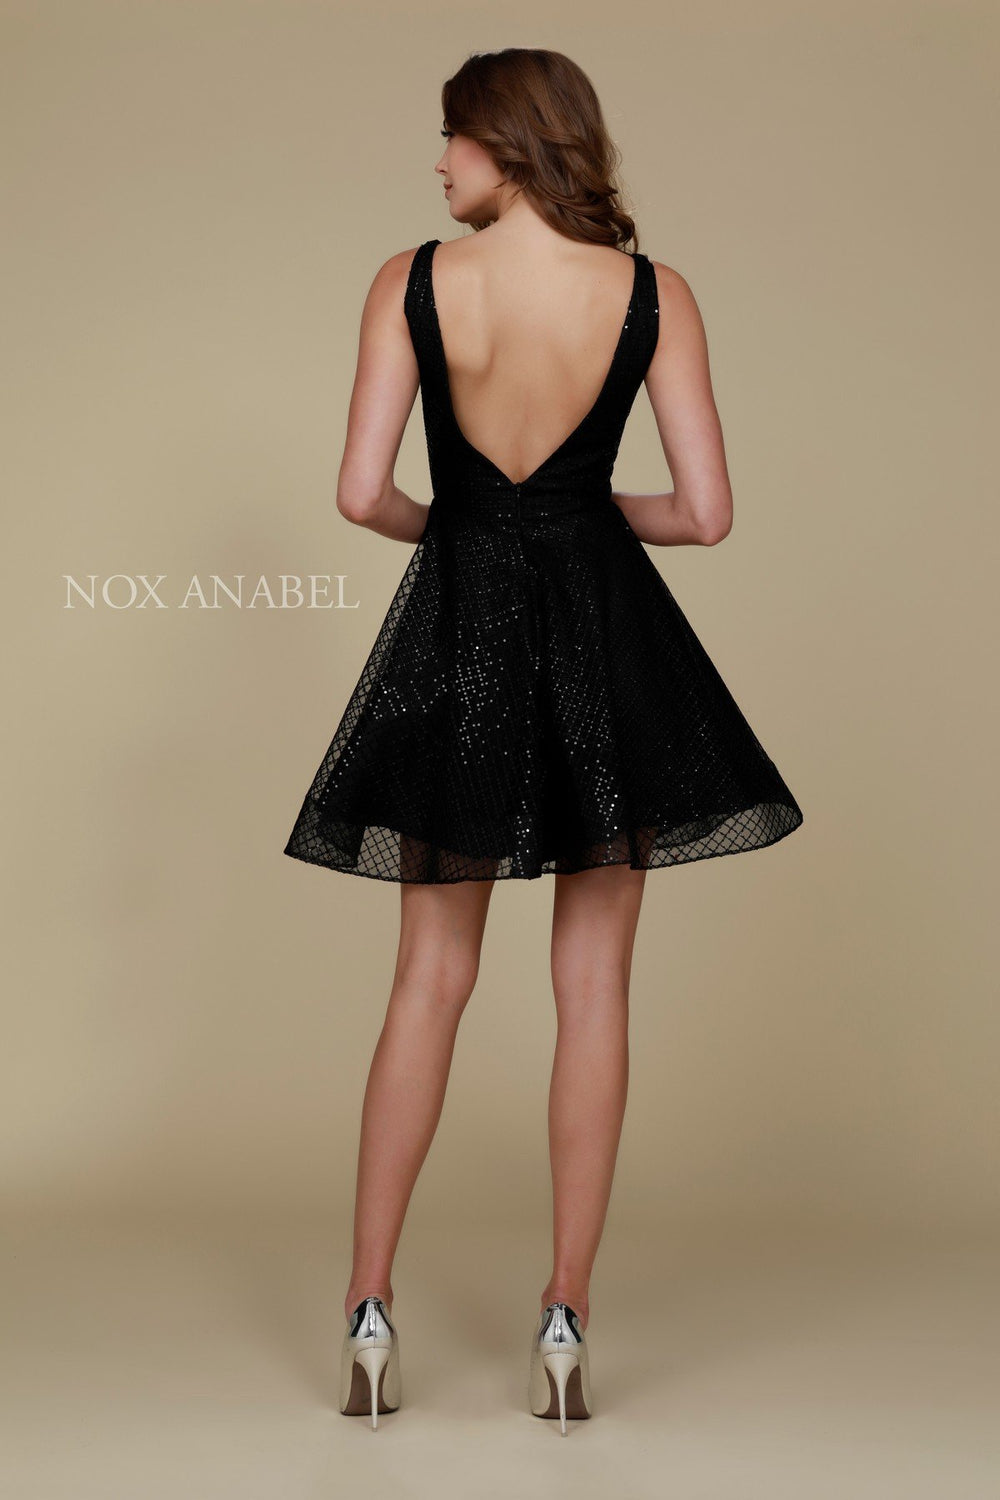 V-SHAPED COCKTAIL DRESS WITH ILLUSION SIDE CUTOUTS M634 BY NARIANNA